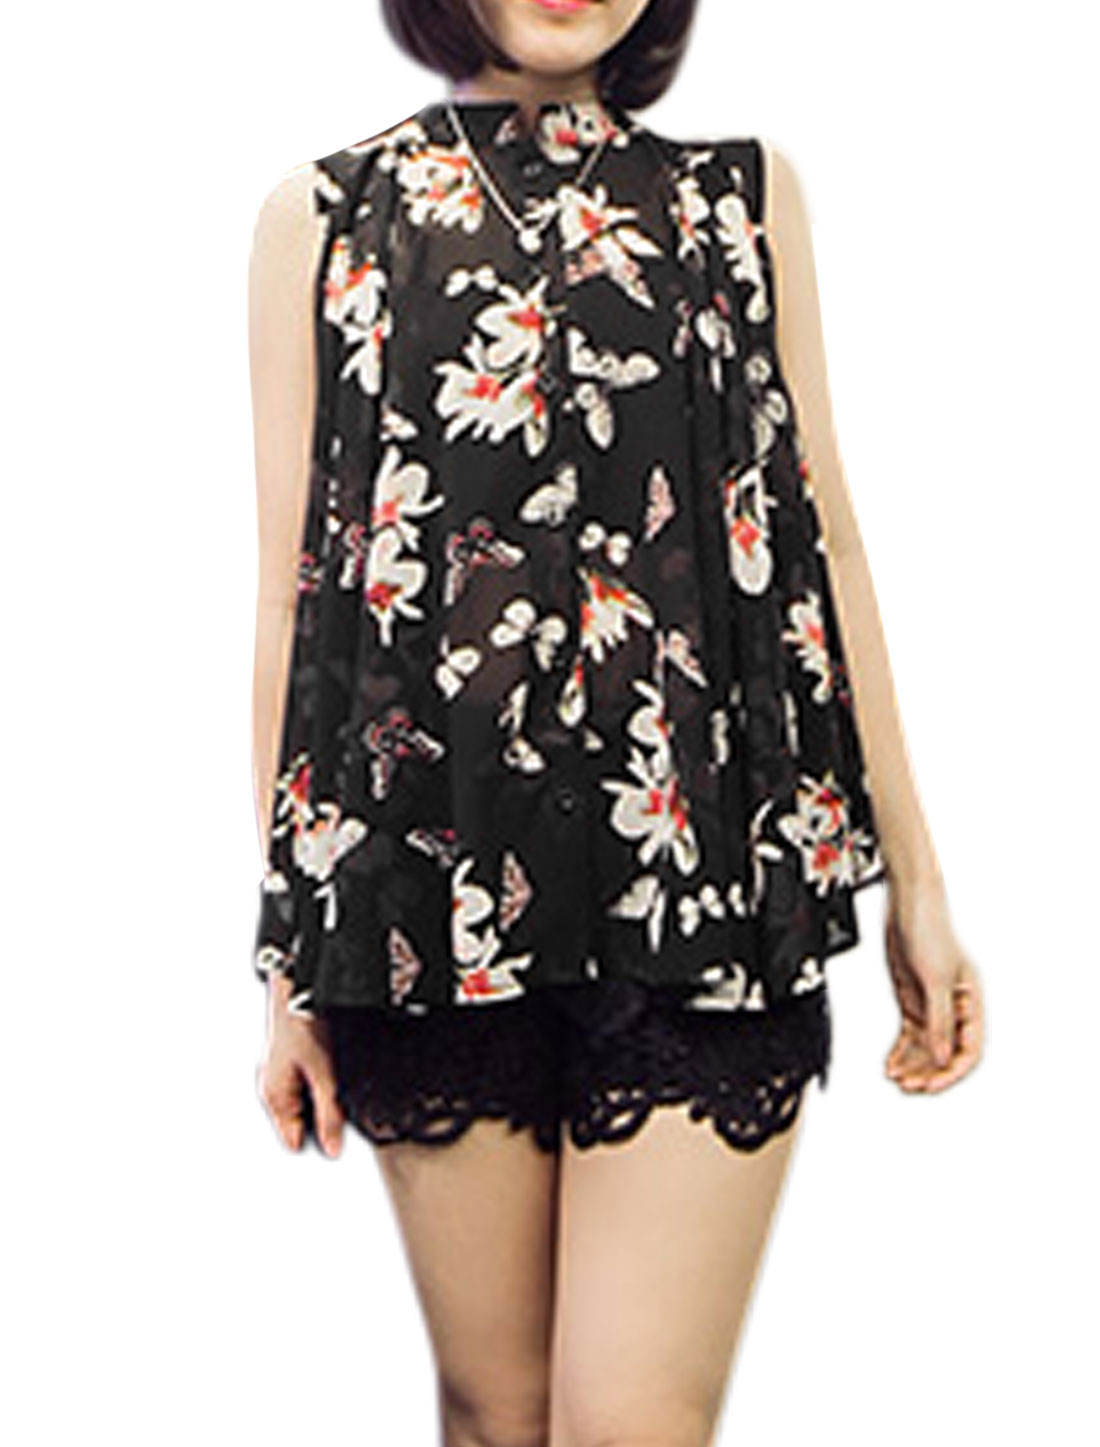 Ladies Floral Butterfly Prints Loose Fit Sleeveless Tops Black S